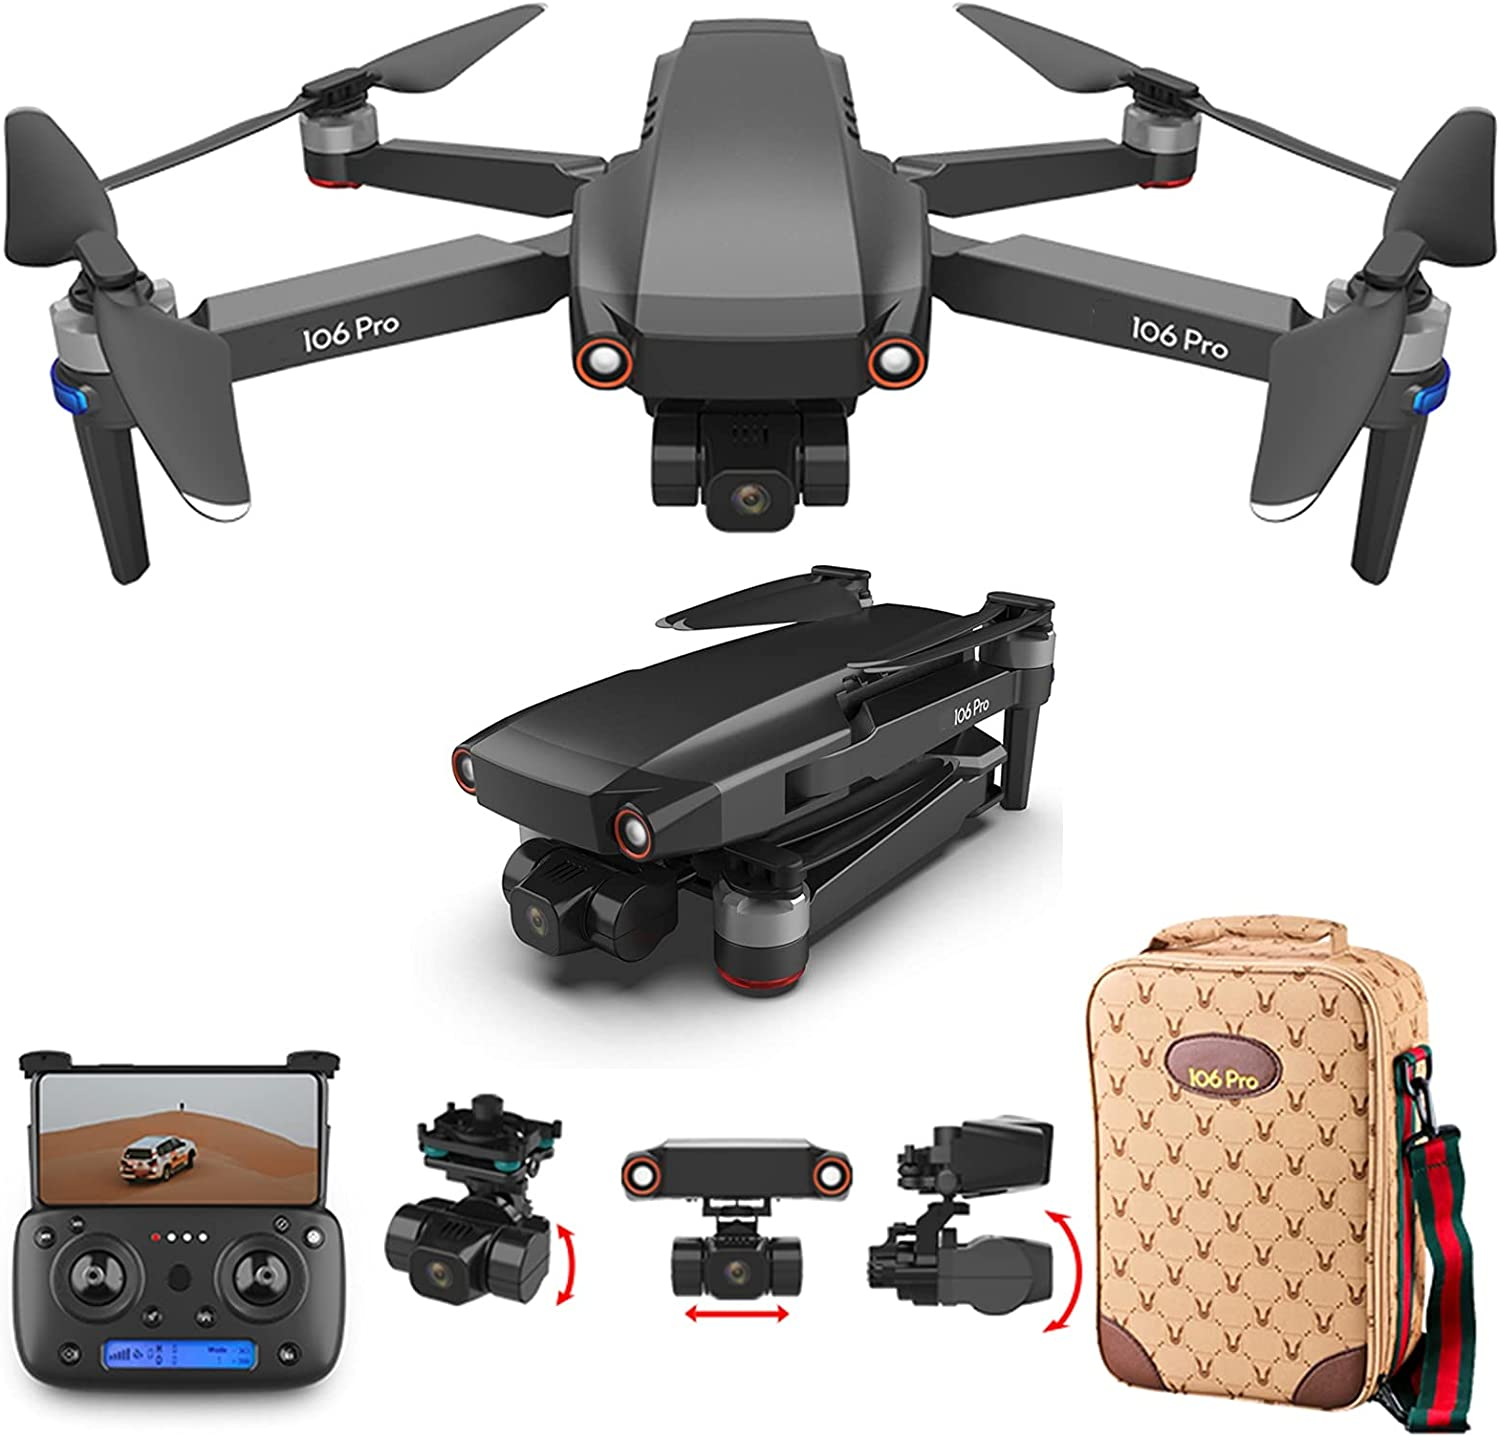 GACYSMD Drone 8K Camera Popular brand in Popular product the world Real-time Broadcast Brushless Thre Video